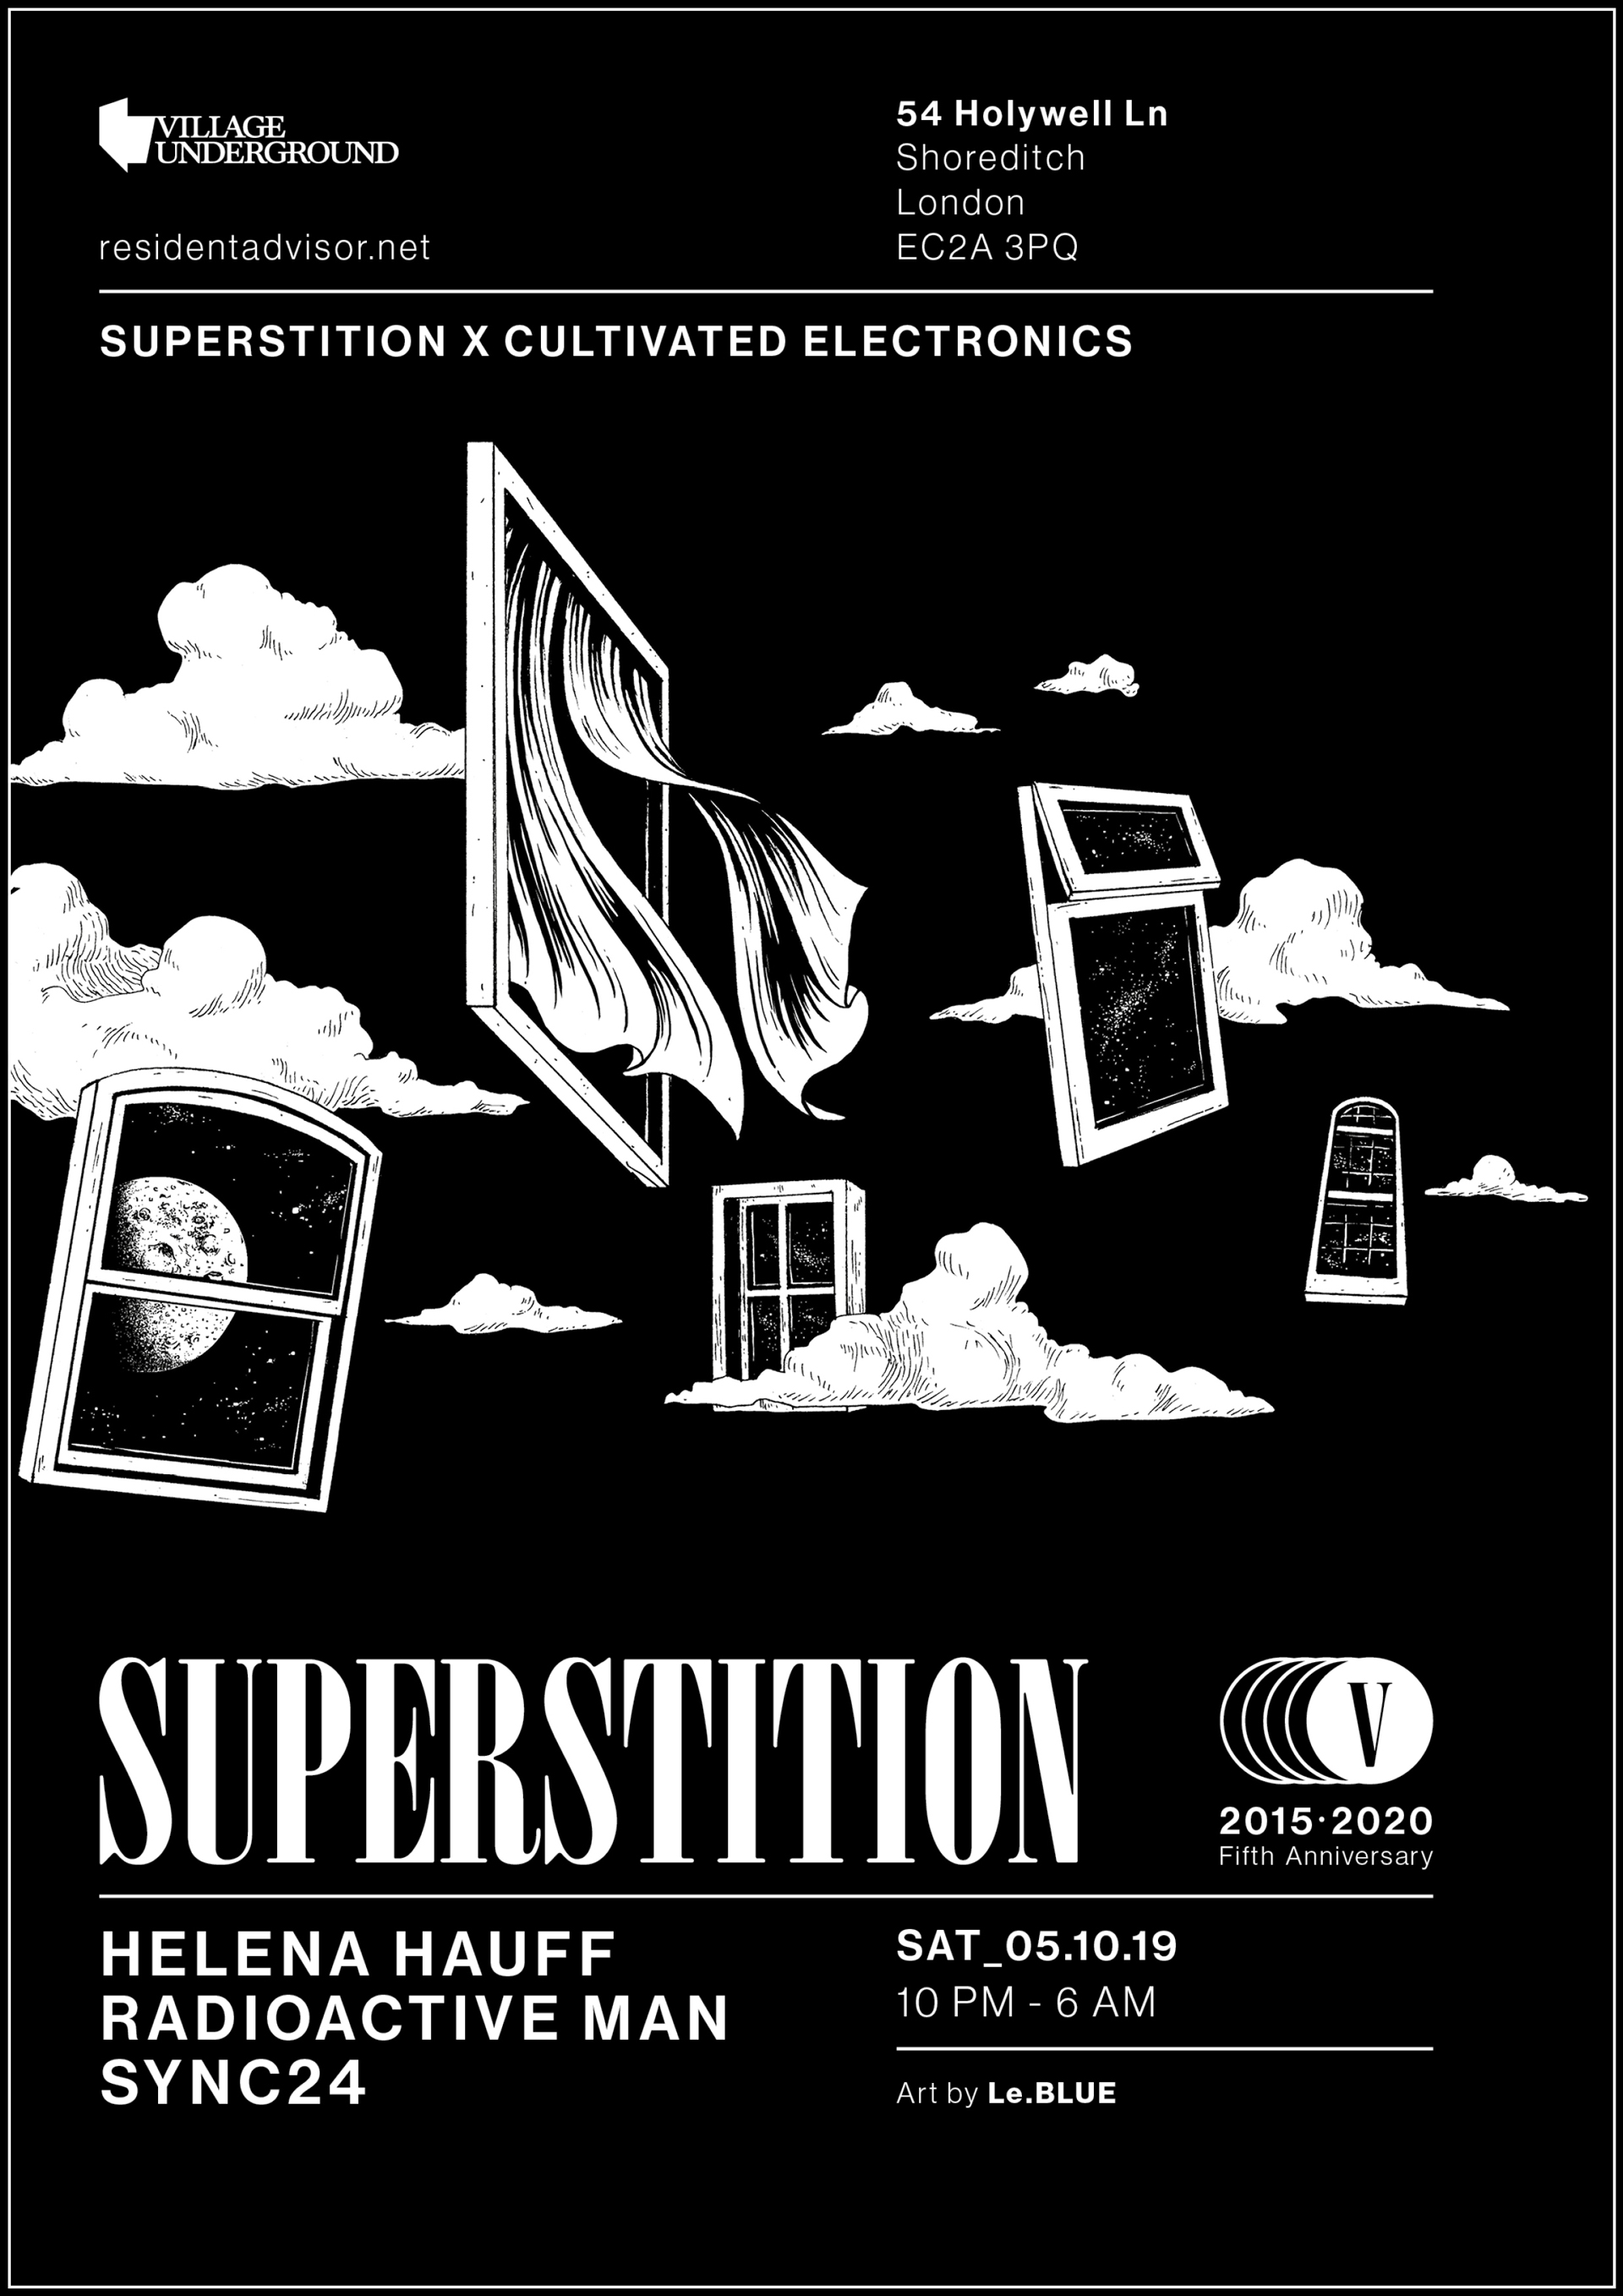 superstition_website6.jpg